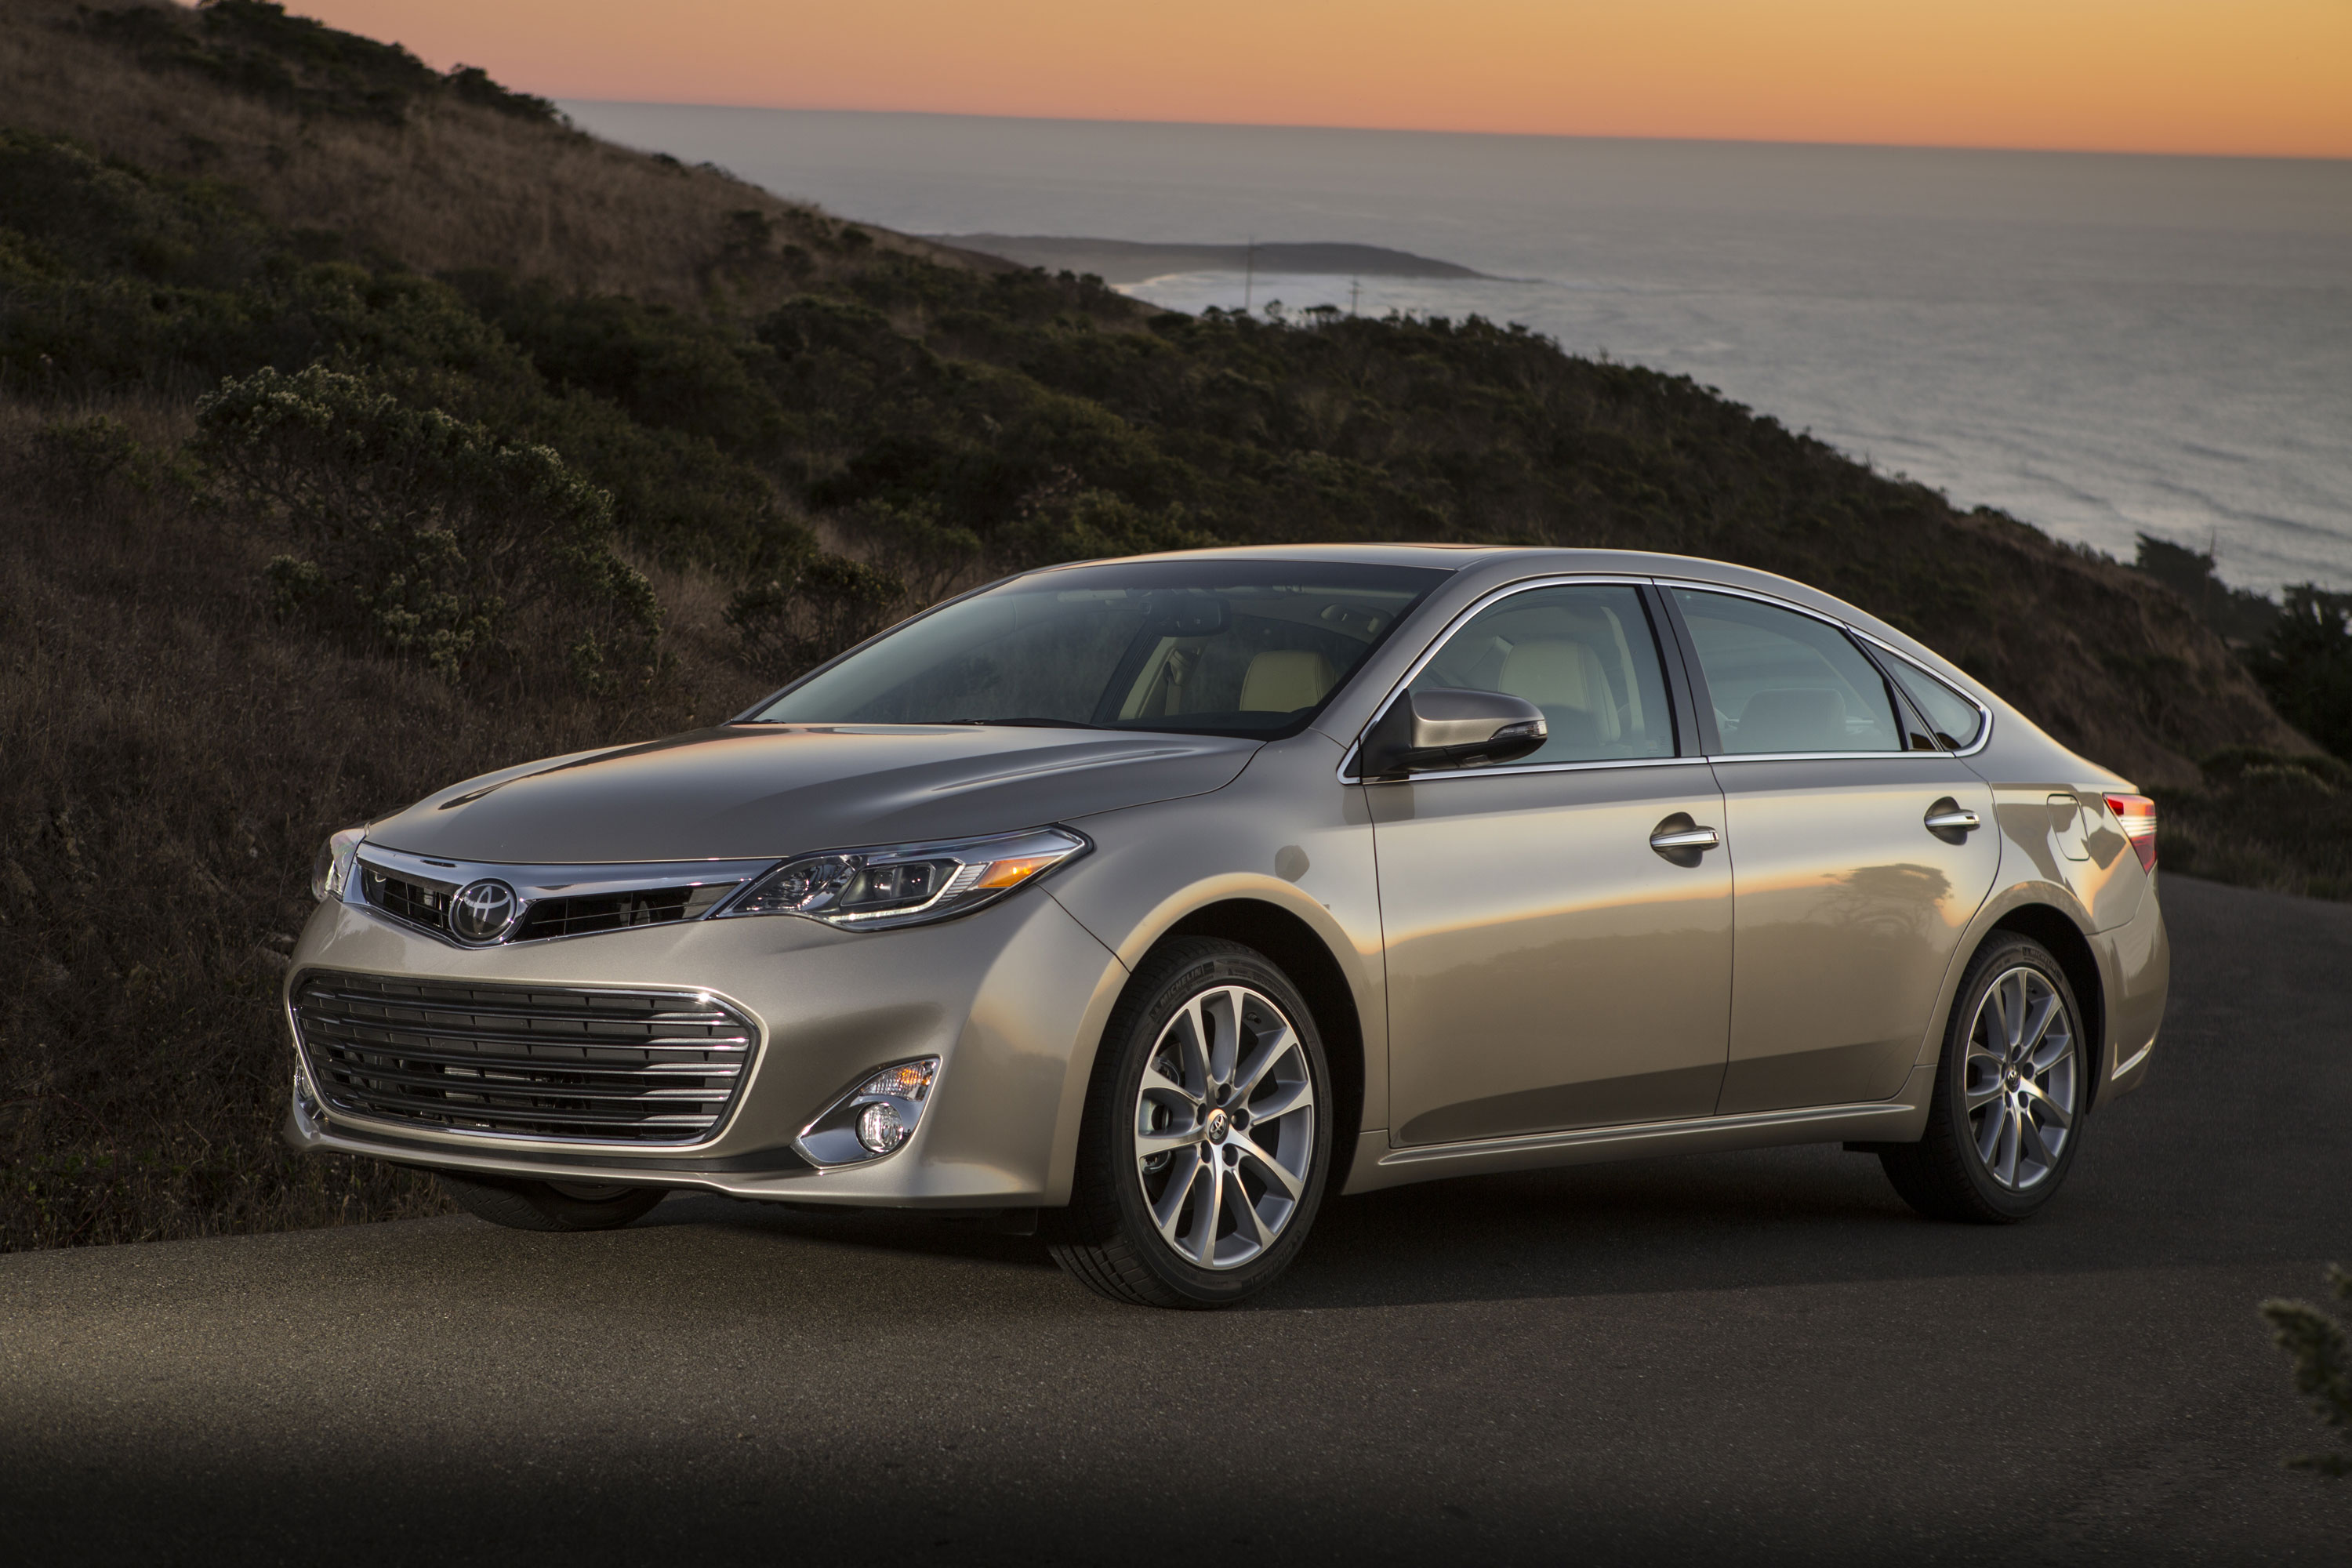 2013 2015 toyota avalon avalon hybrid lexus es300h es350 recalled to fix auto braking problem